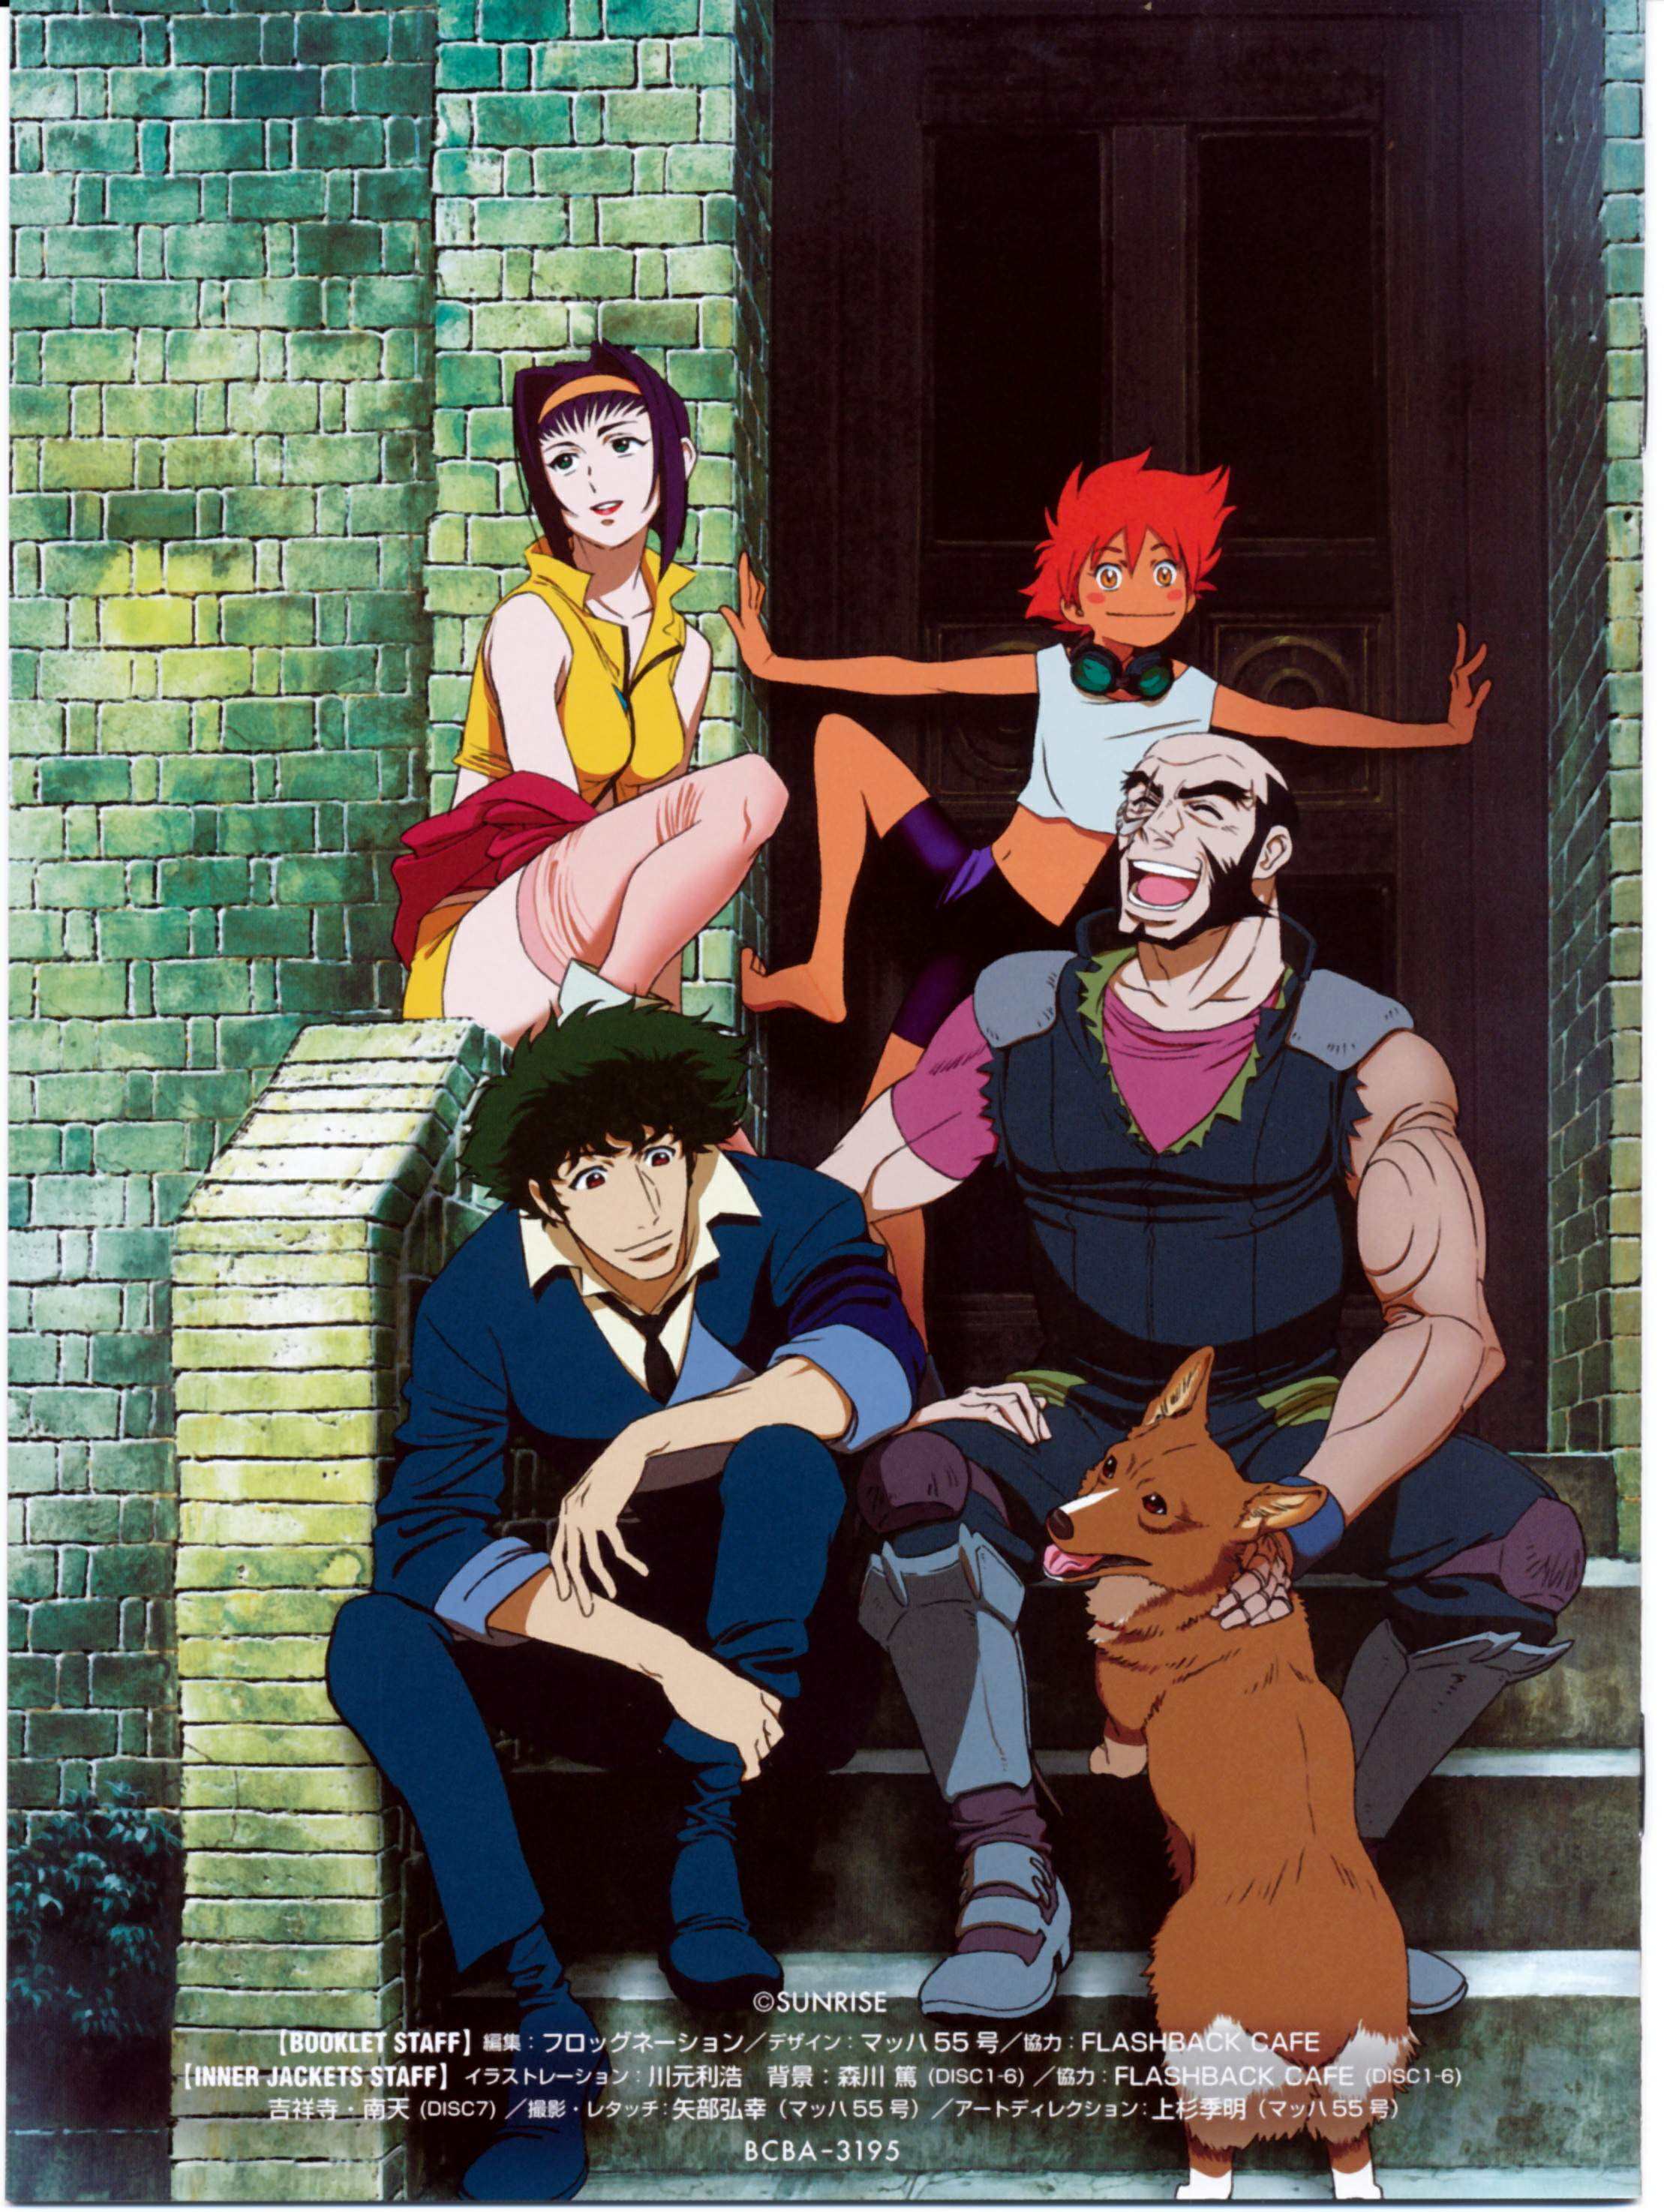 Cowboy Bebop: Wong Hau Pepelu - Photo Colection